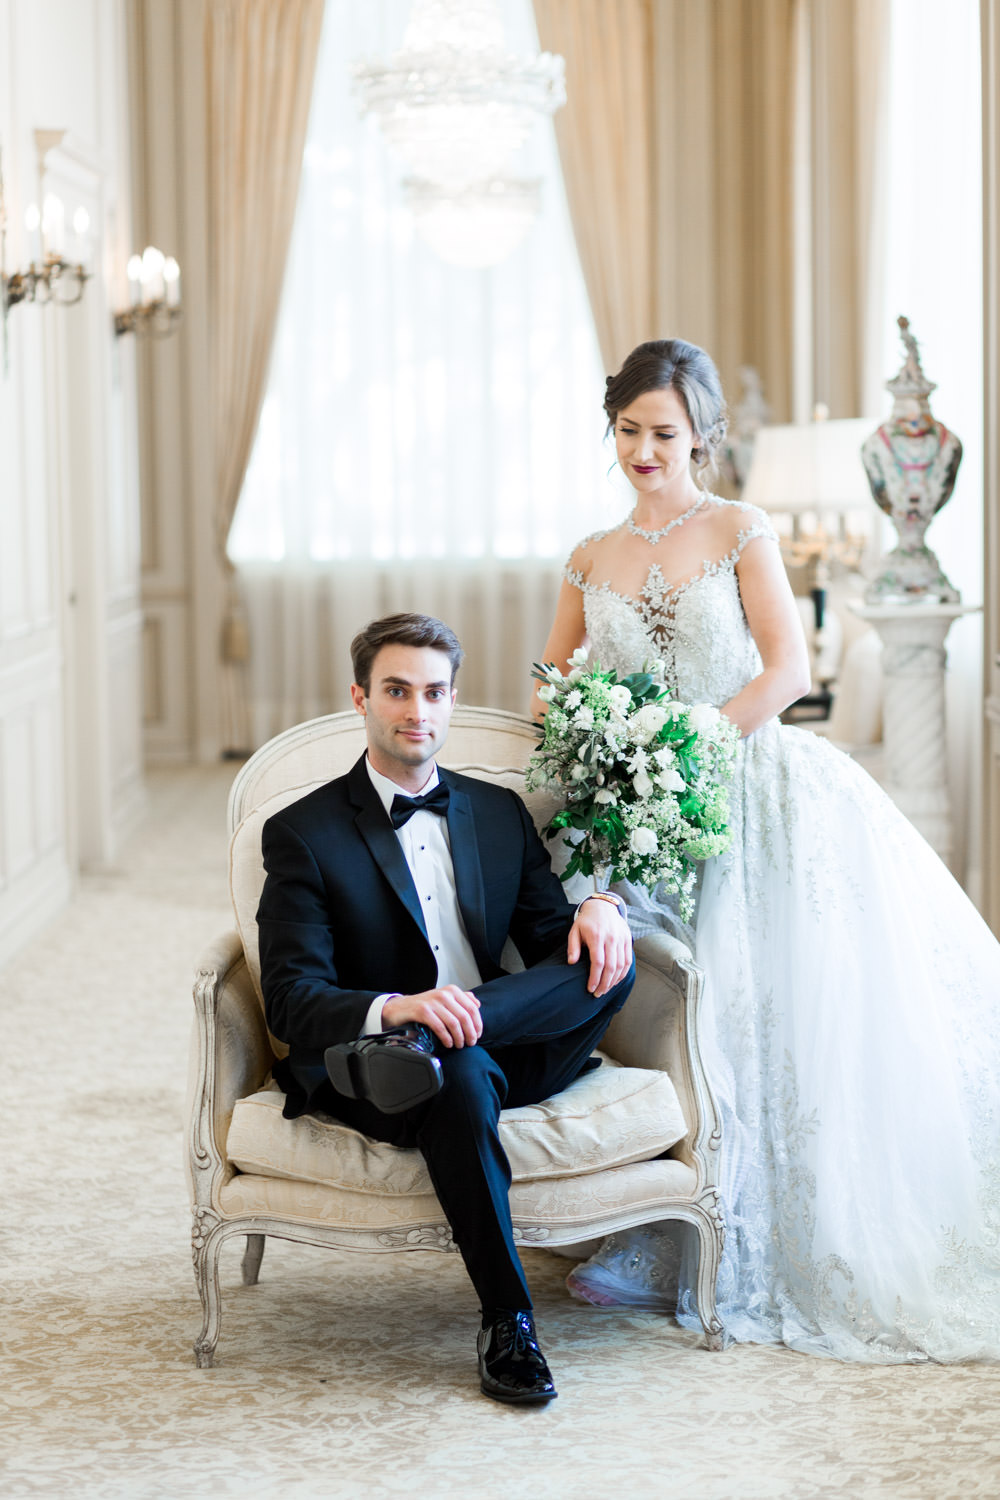 Royal groom and bride in a YSA MAkino wedding gown, The Crown Inspired Westgate Hotel Wedding in San Diego by Cavin Elizabeth Photography